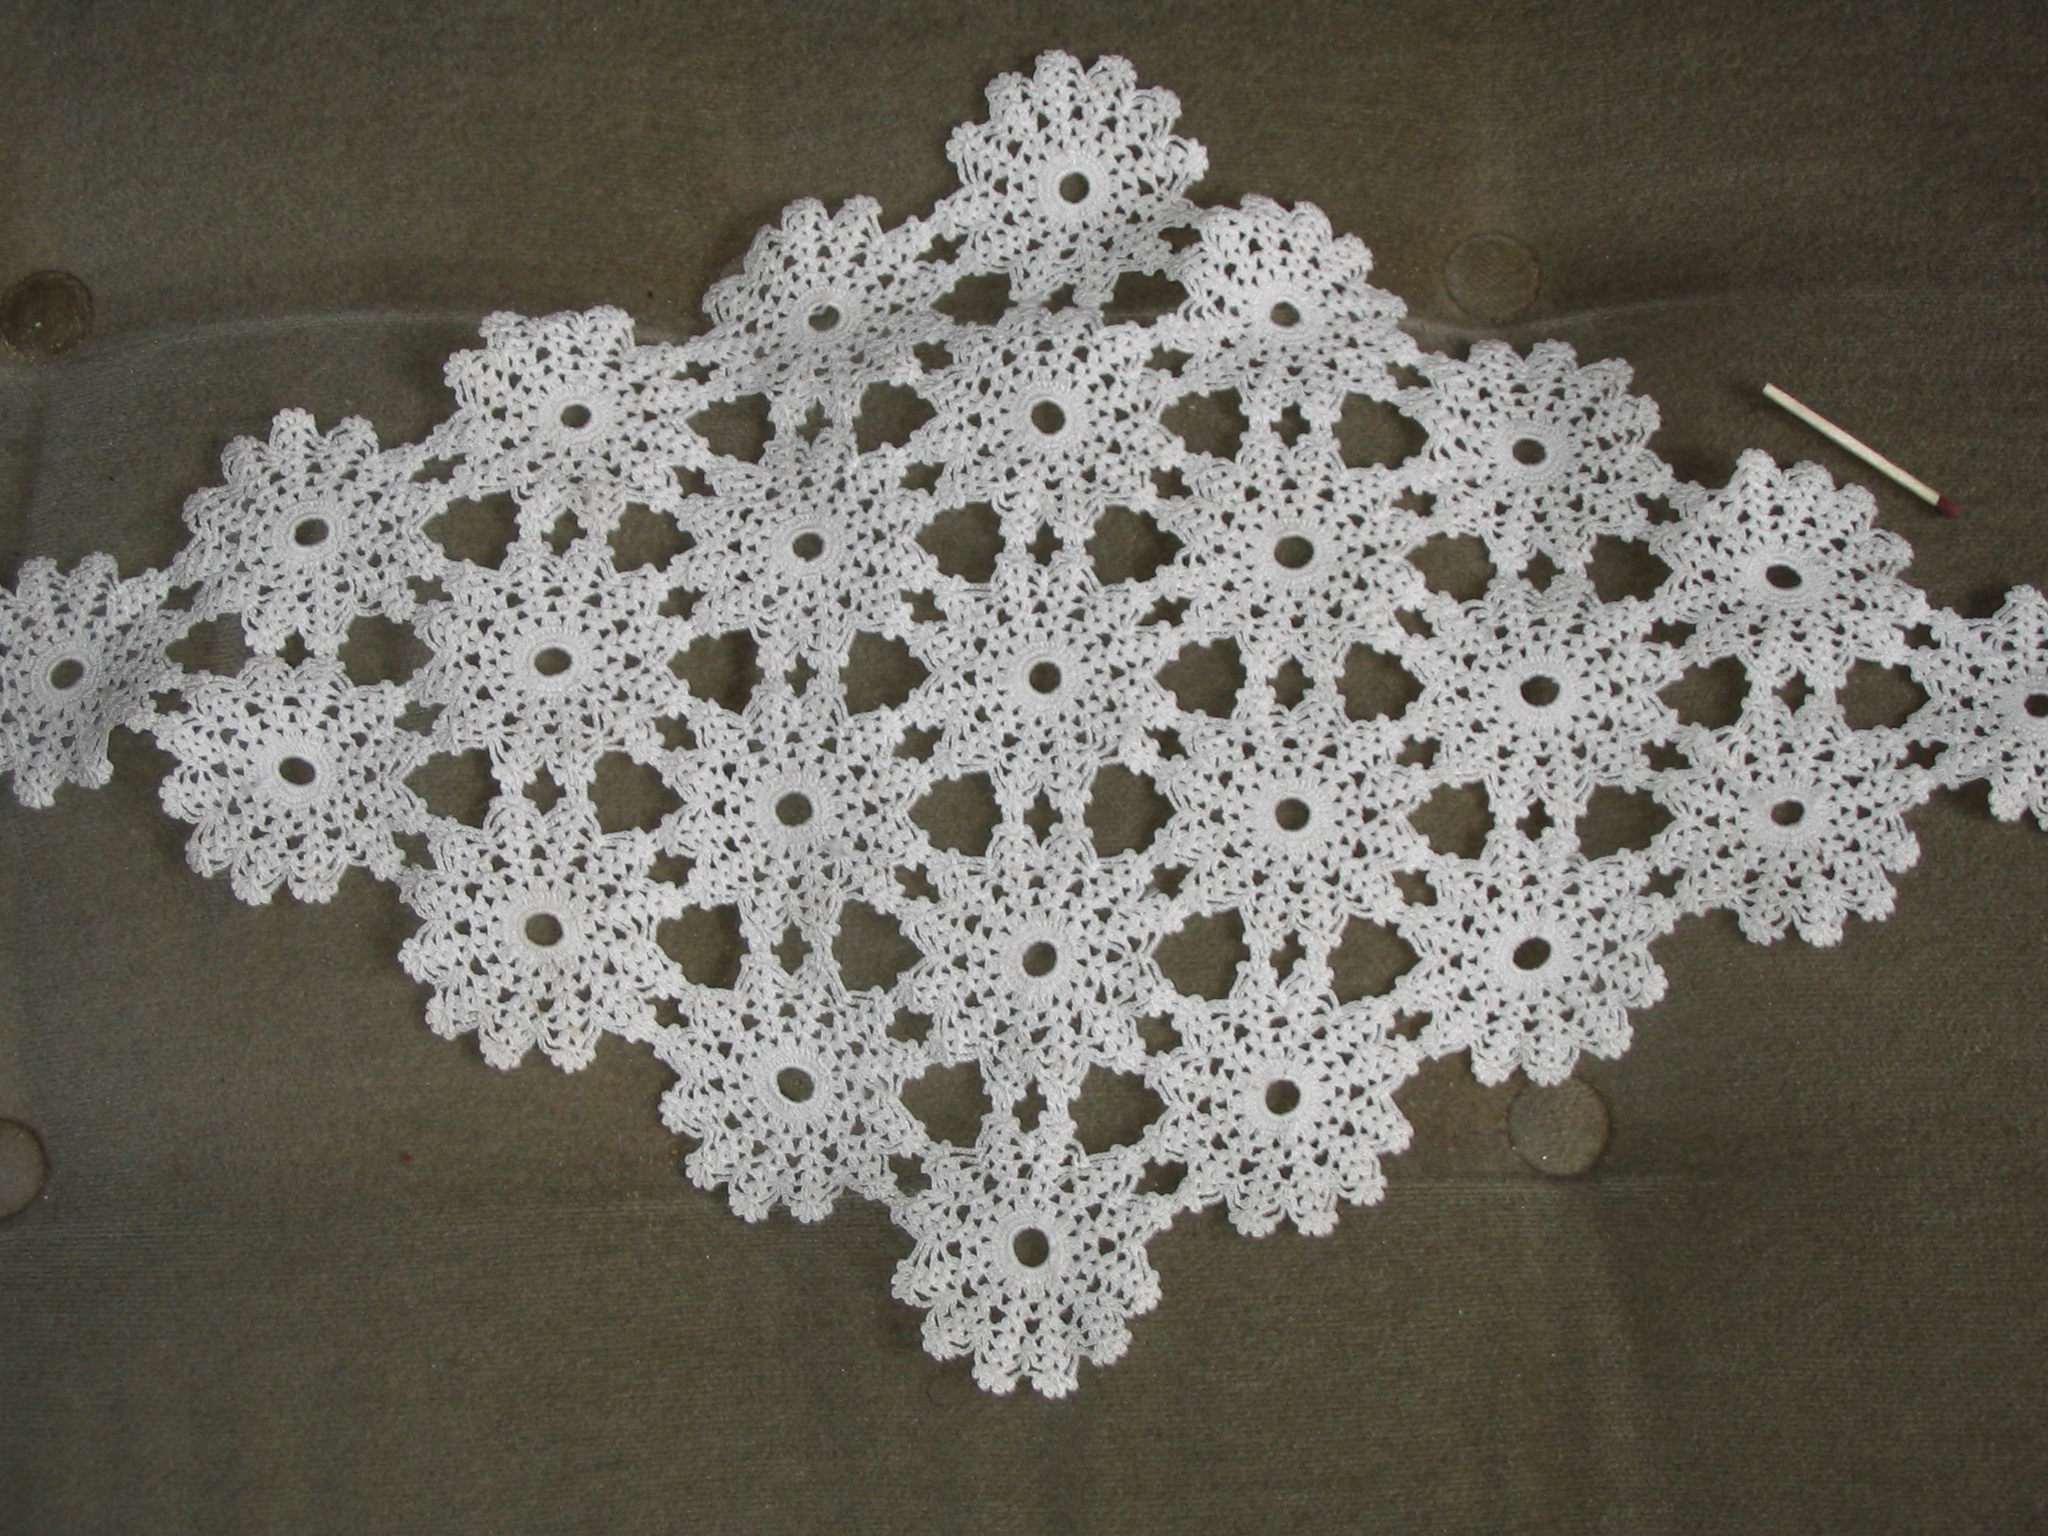 Archivo:Crochet small Swedish tablecloth about 1930.JPG